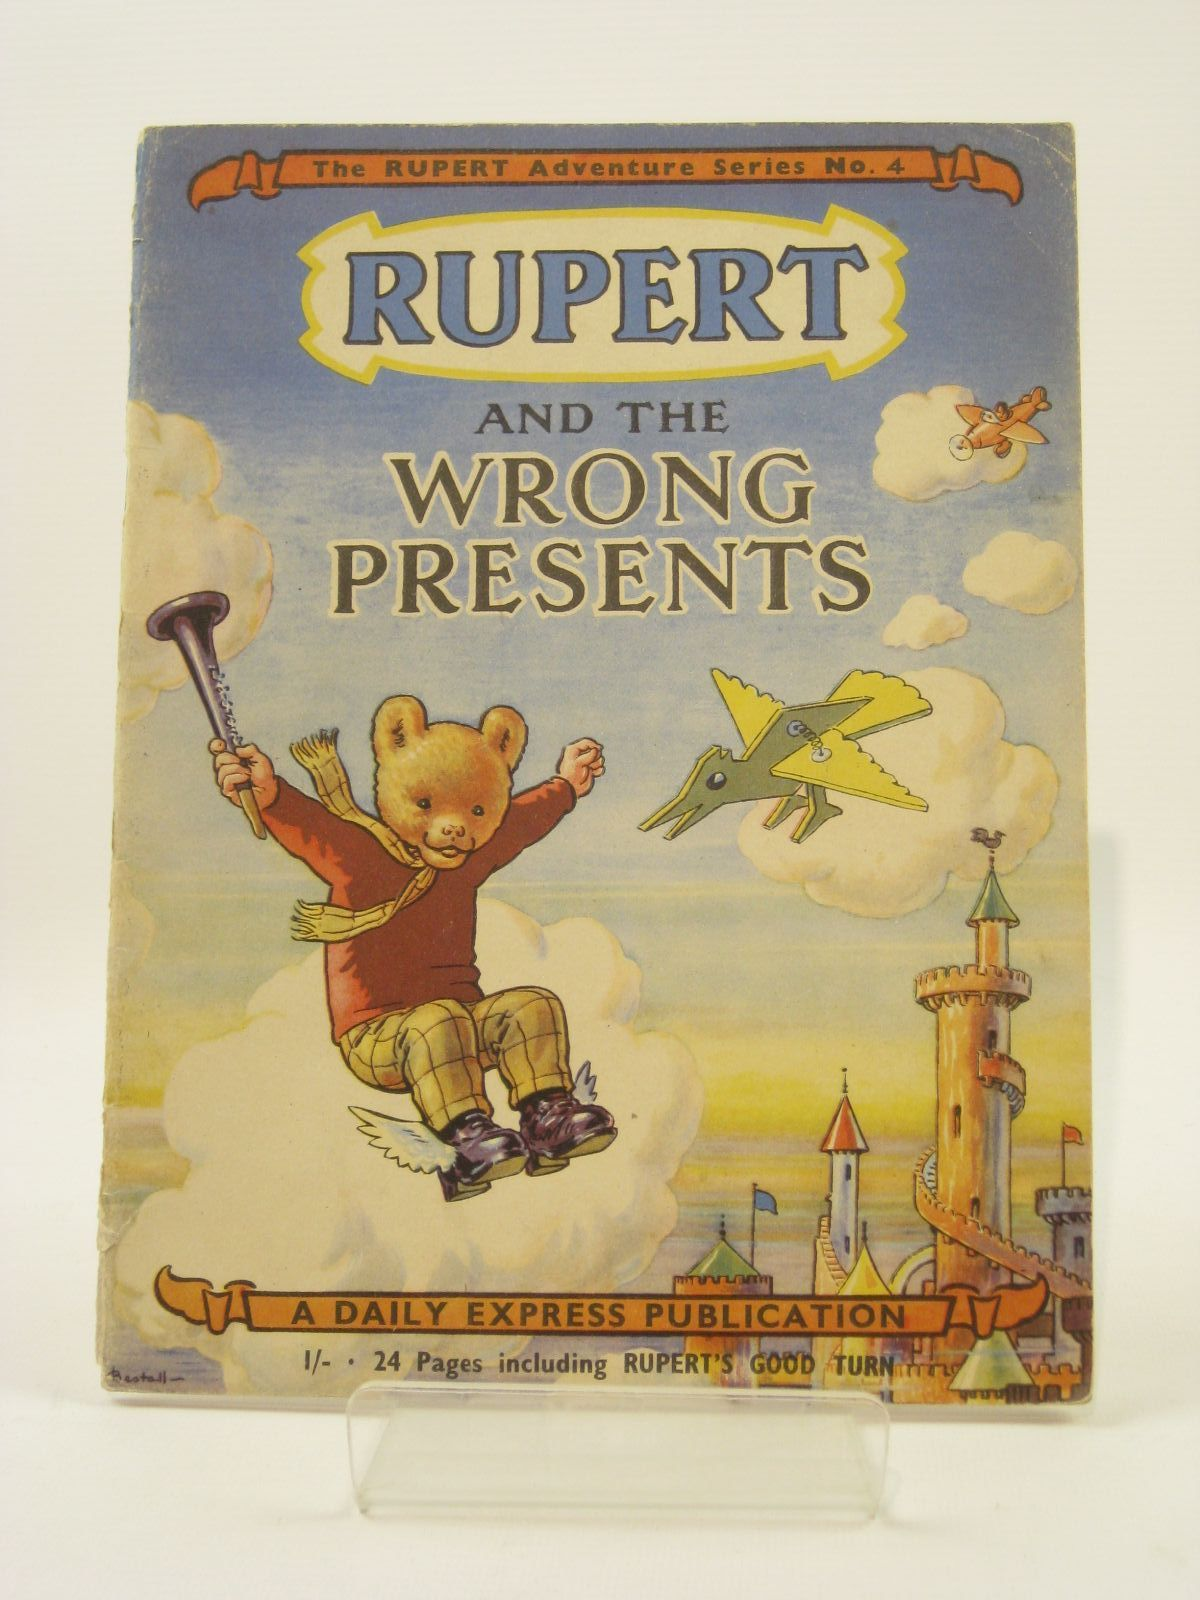 Photo of RUPERT ADVENTURE SERIES No. 4 - RUPERT AND THE WRONG PRESENTS written by Bestall, Alfred illustrated by Bestall, Alfred published by Daily Express (STOCK CODE: 1407195)  for sale by Stella & Rose's Books